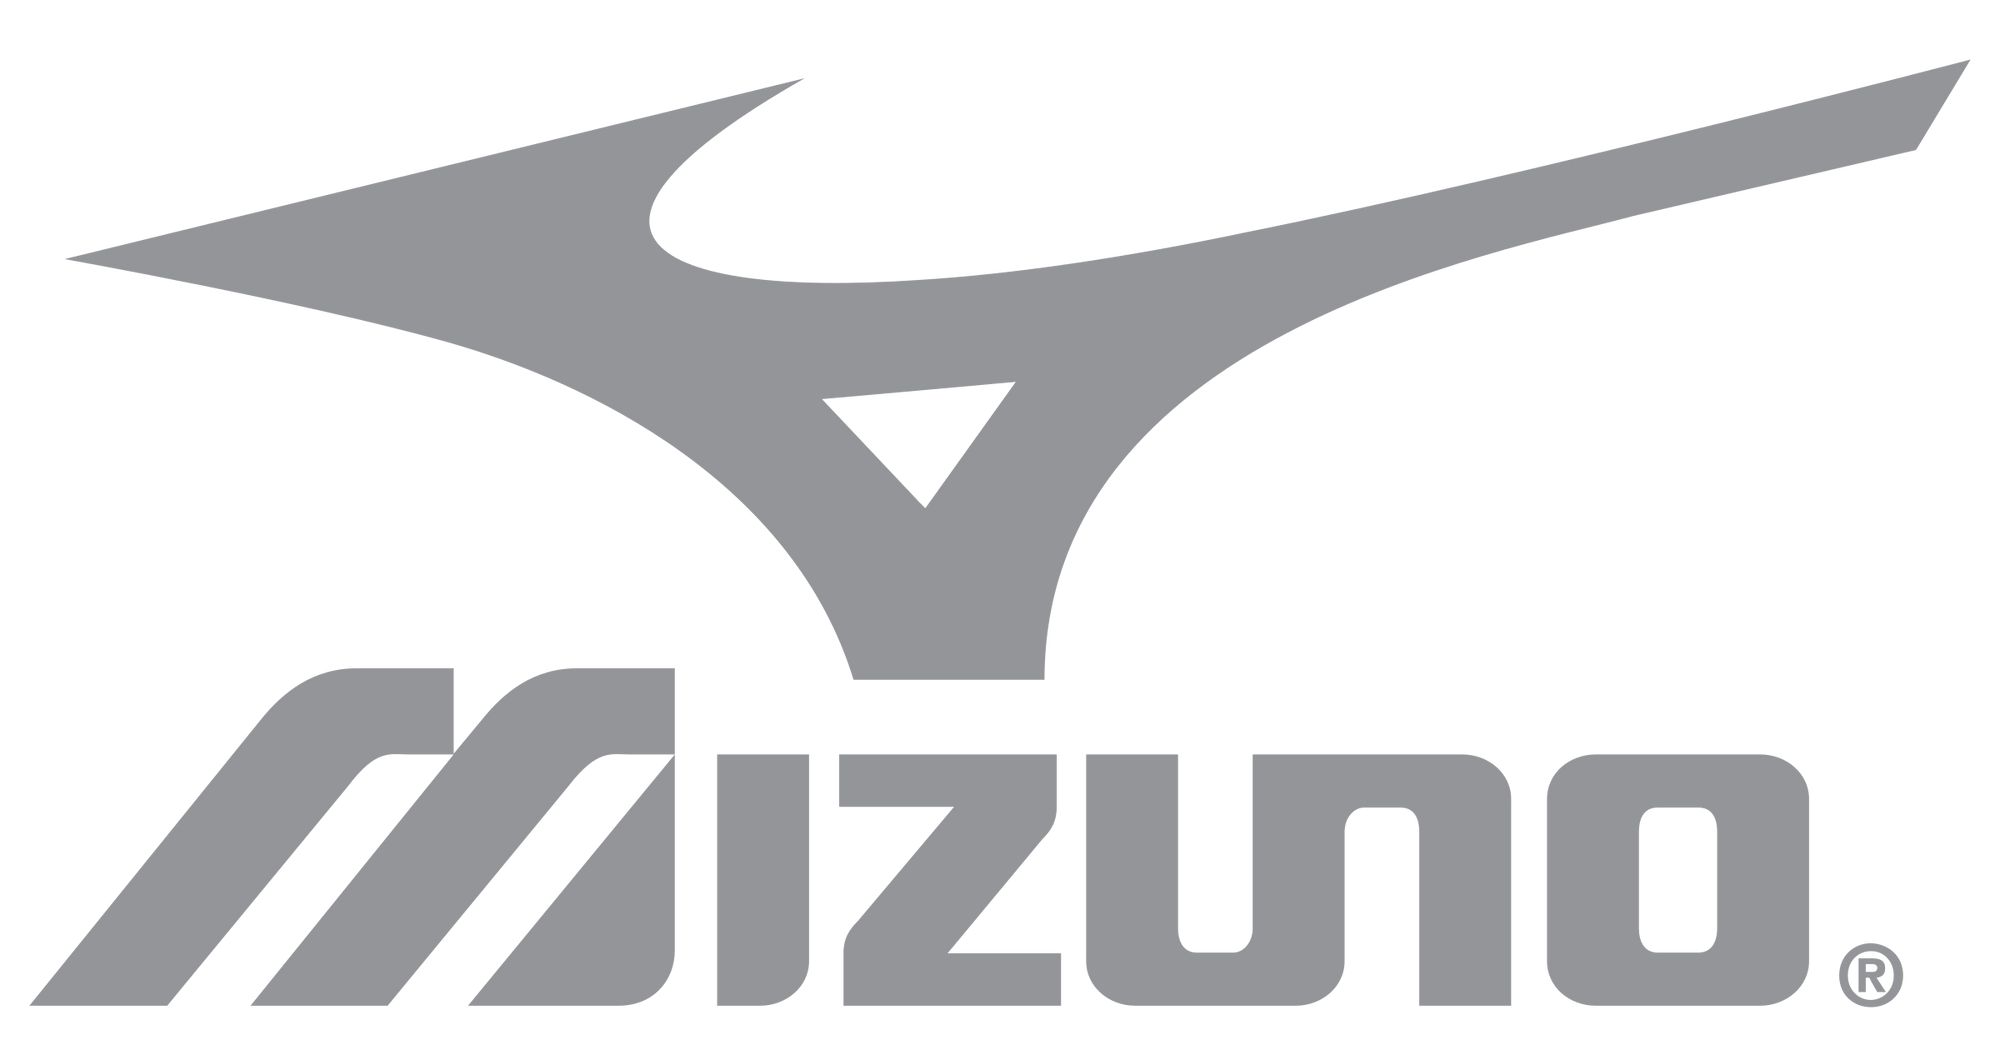 Mizuno | Mizuno Baseball | Mizuno Diamond Sports | Mizuno Softball